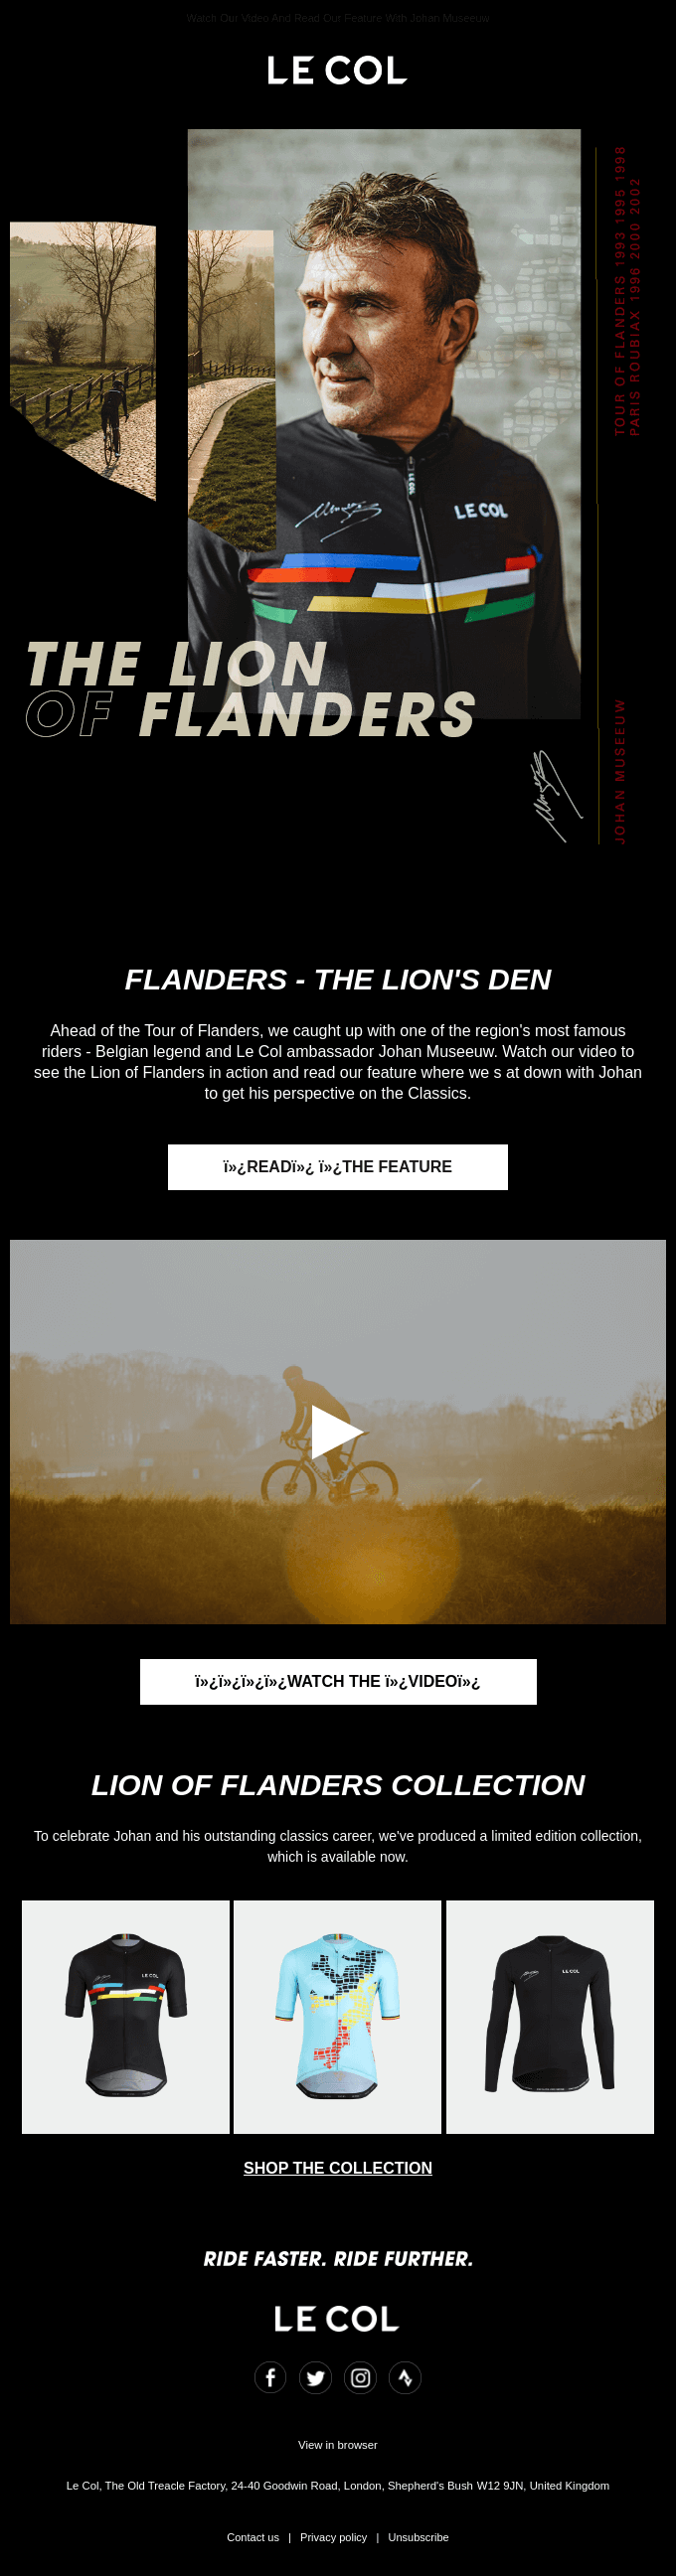 Discover Flanders Through Museeuw's Eyes